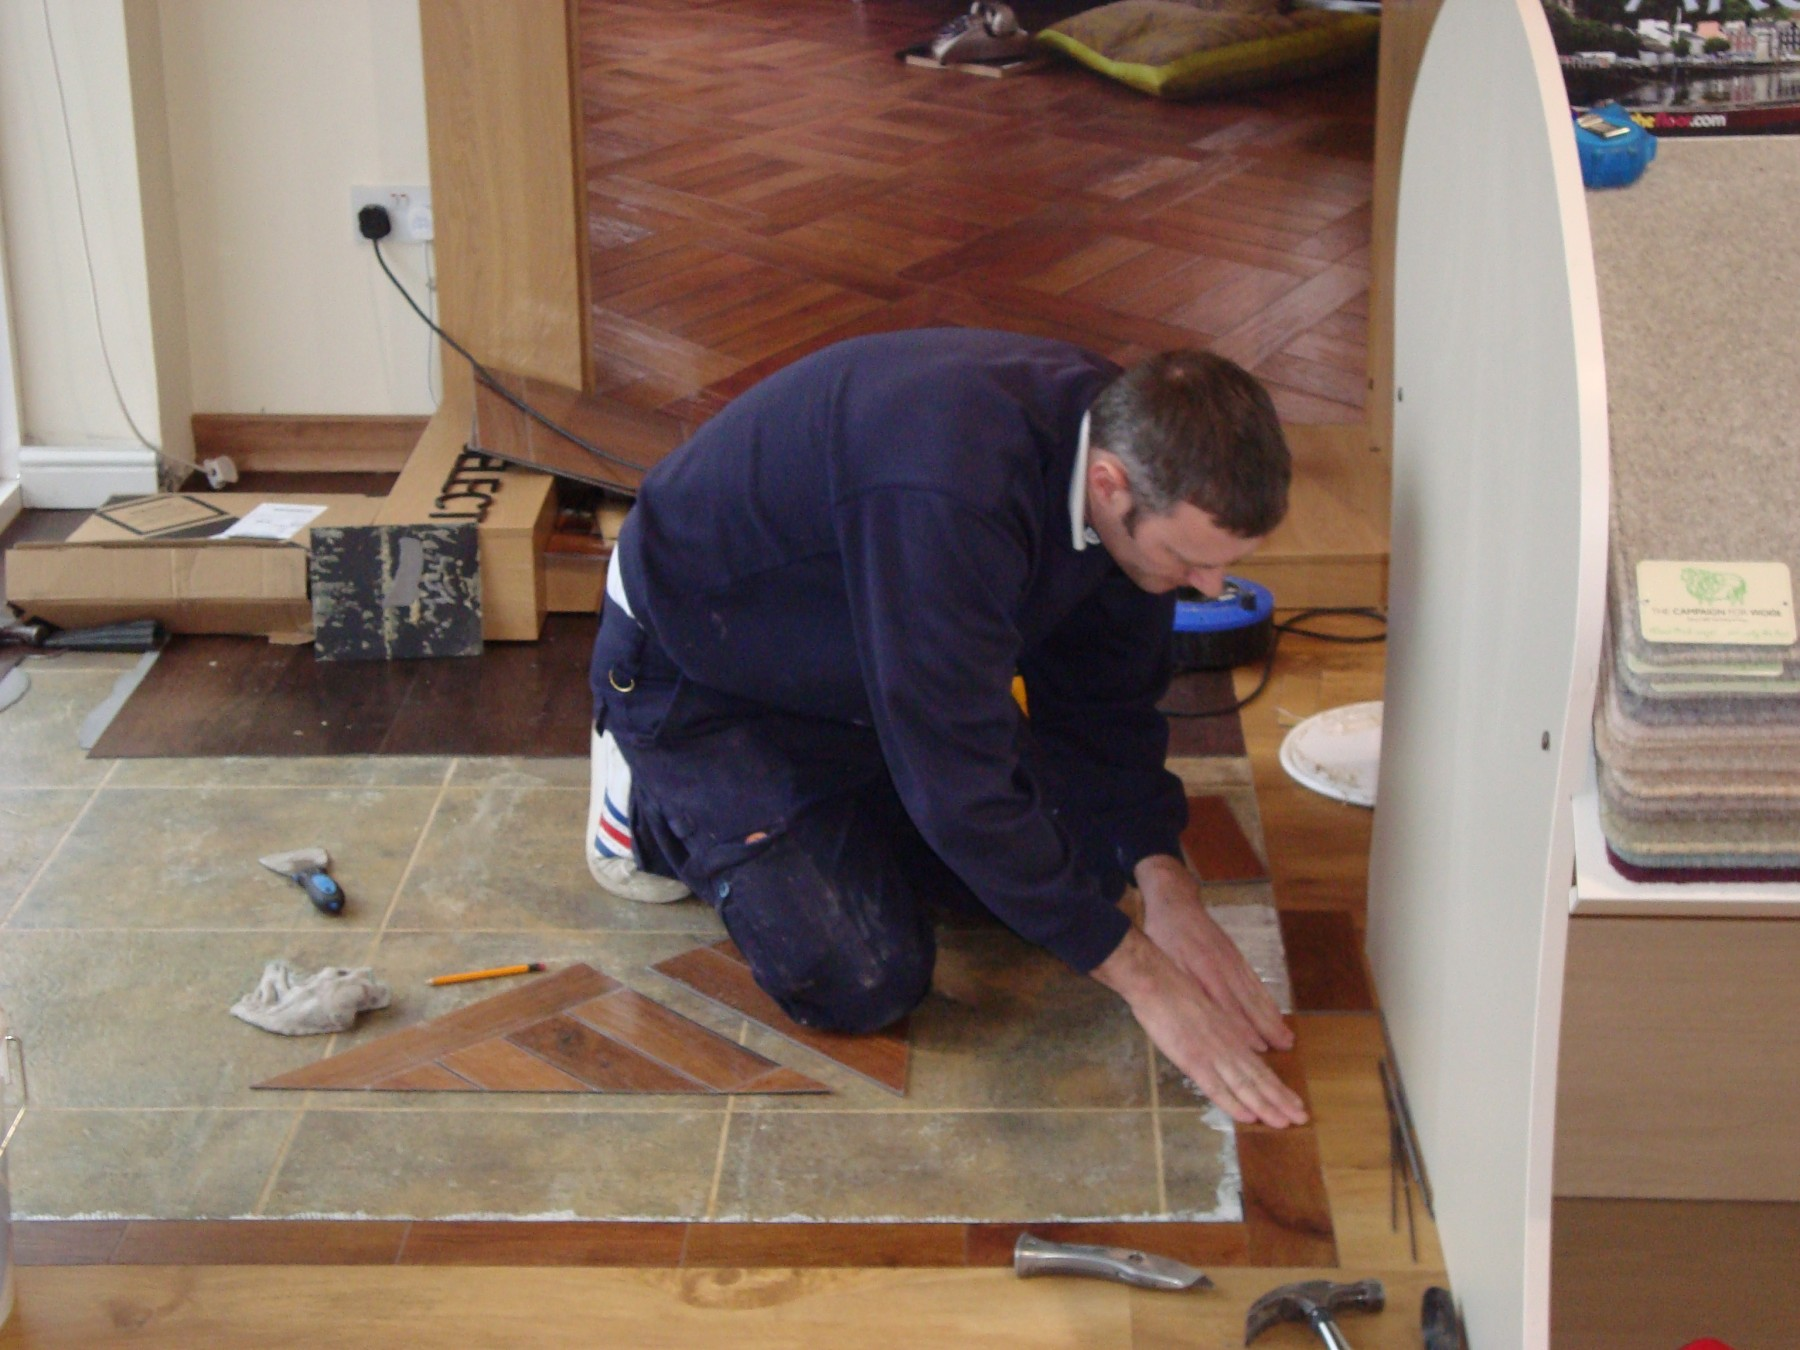 Workman in blue overalls laying flooring in a magnolia room